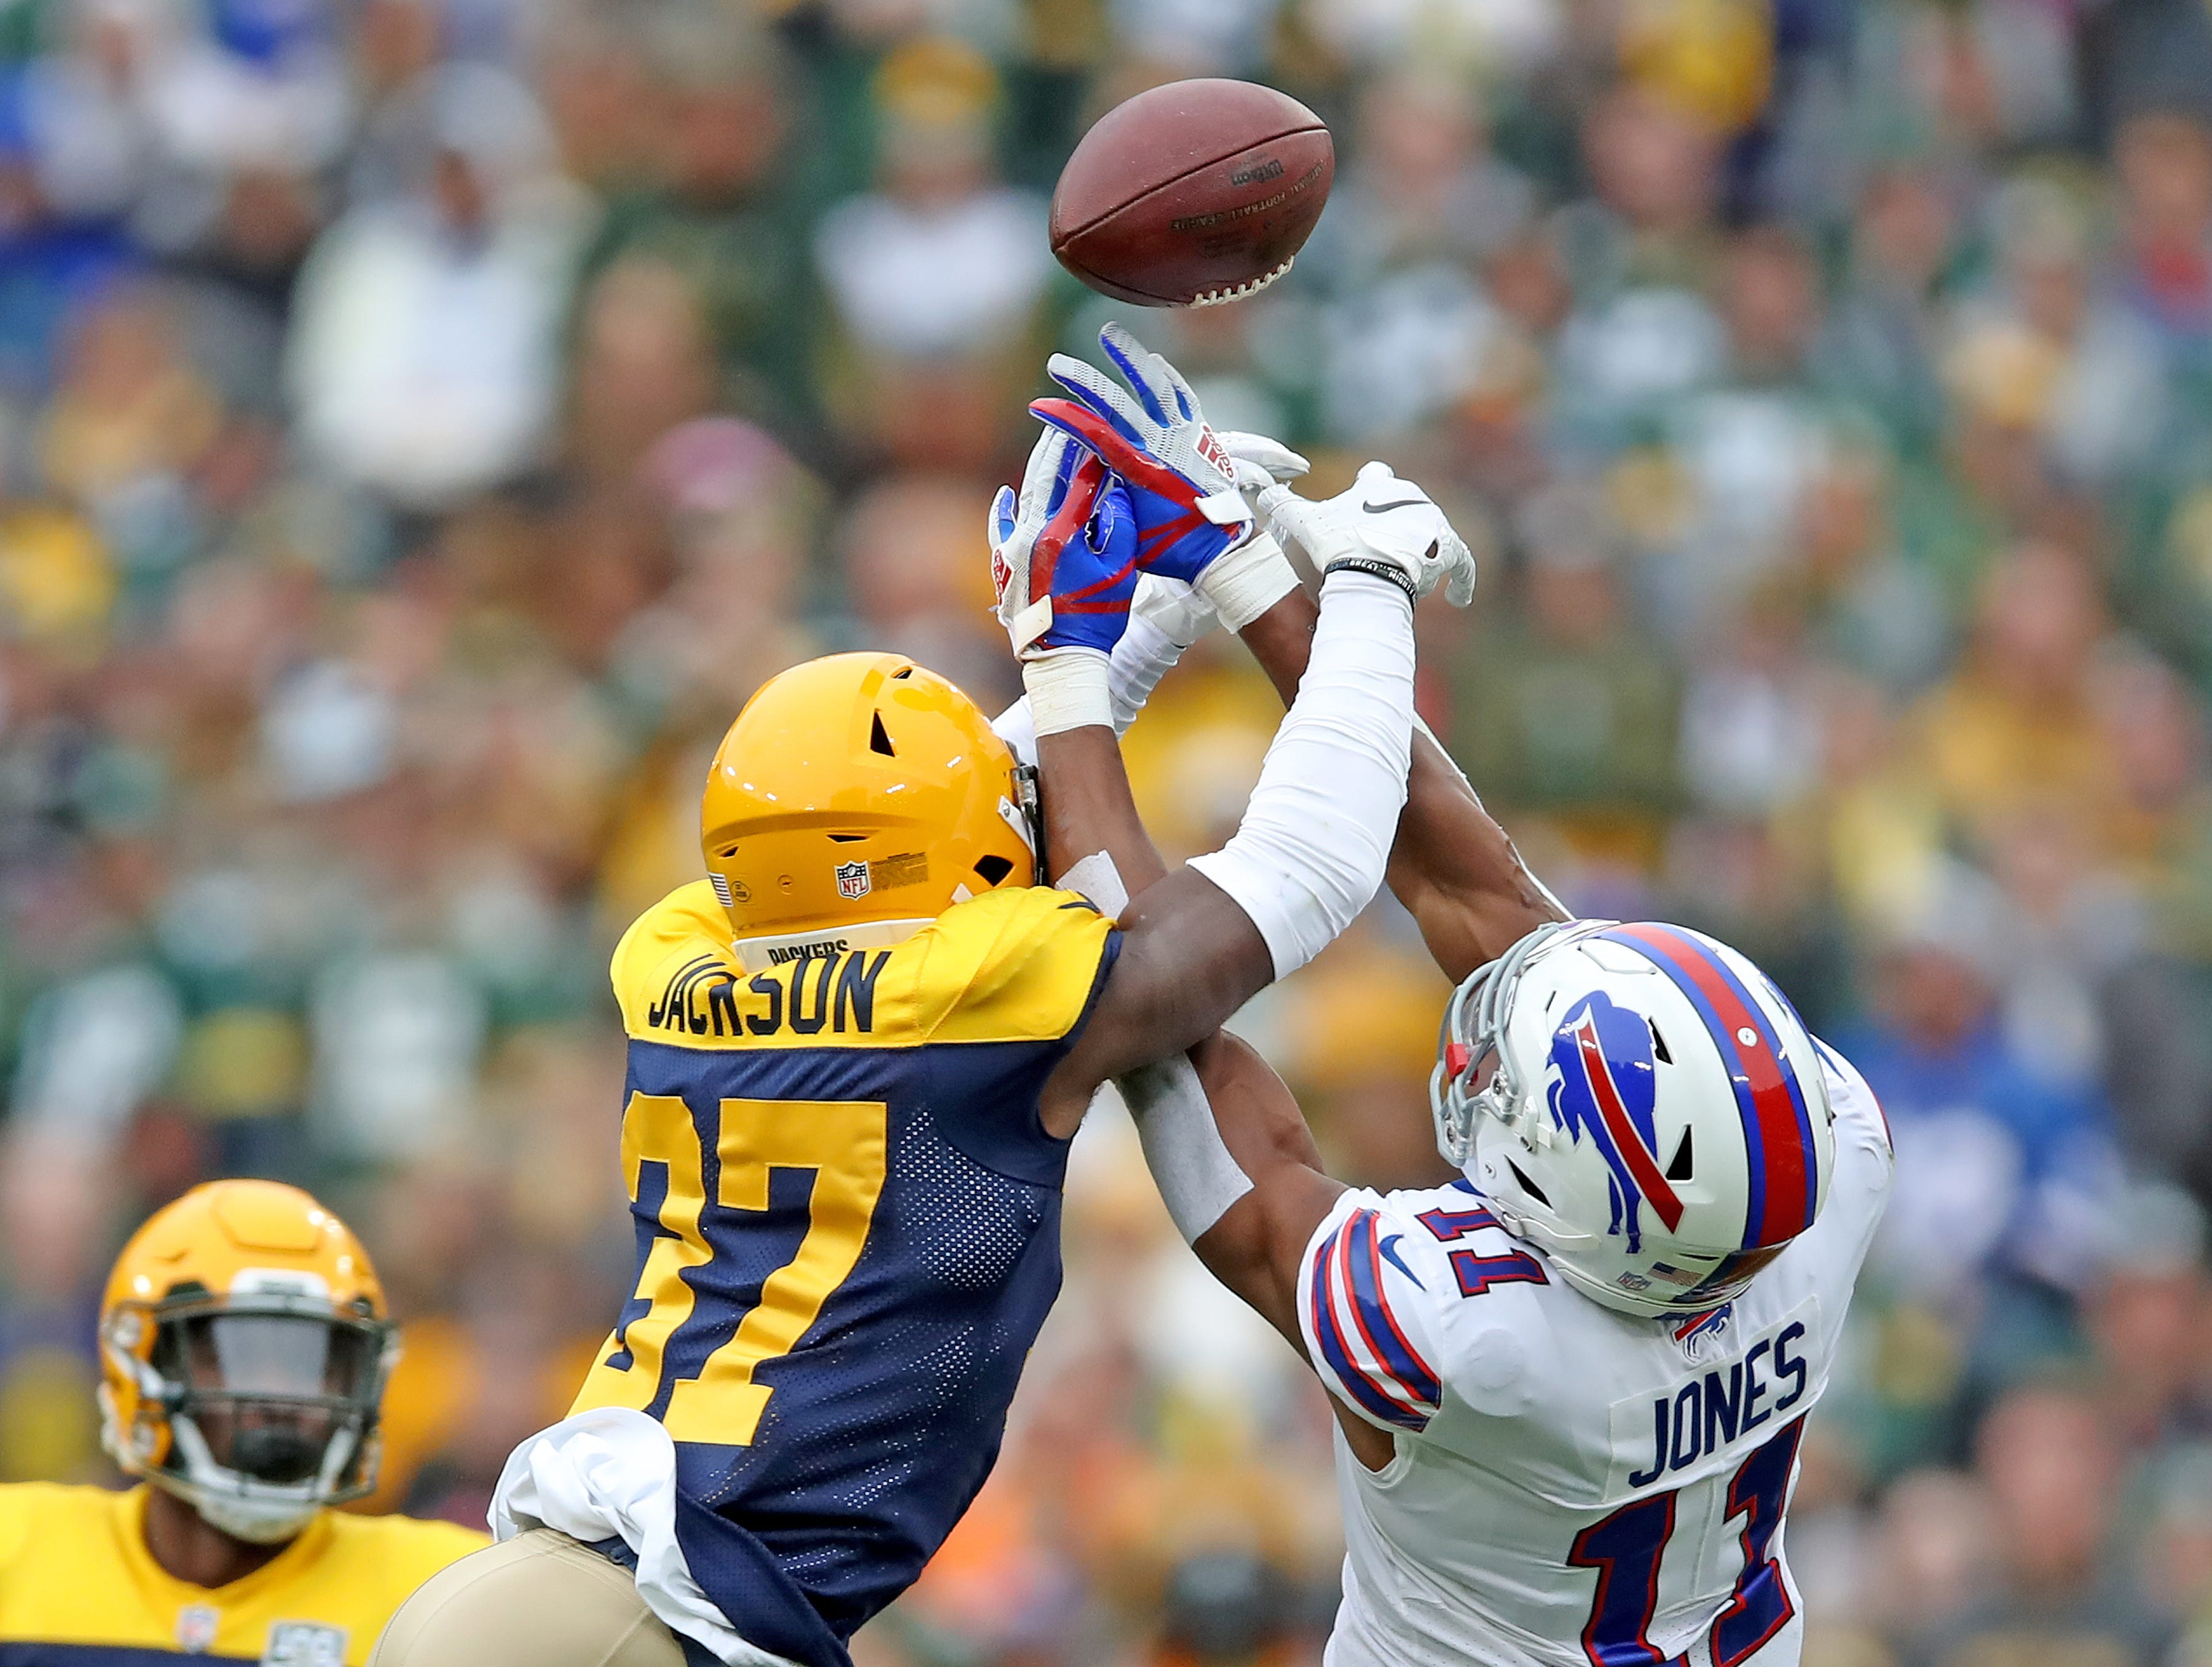 Green Bay Packers cornerback Josh Jackson (37) breaks up a pass to wide receiver Zay Jones (11) against the Buffalo Bills Sunday September 30, 2018 at Lambeau Field in Green Bay, Wis.